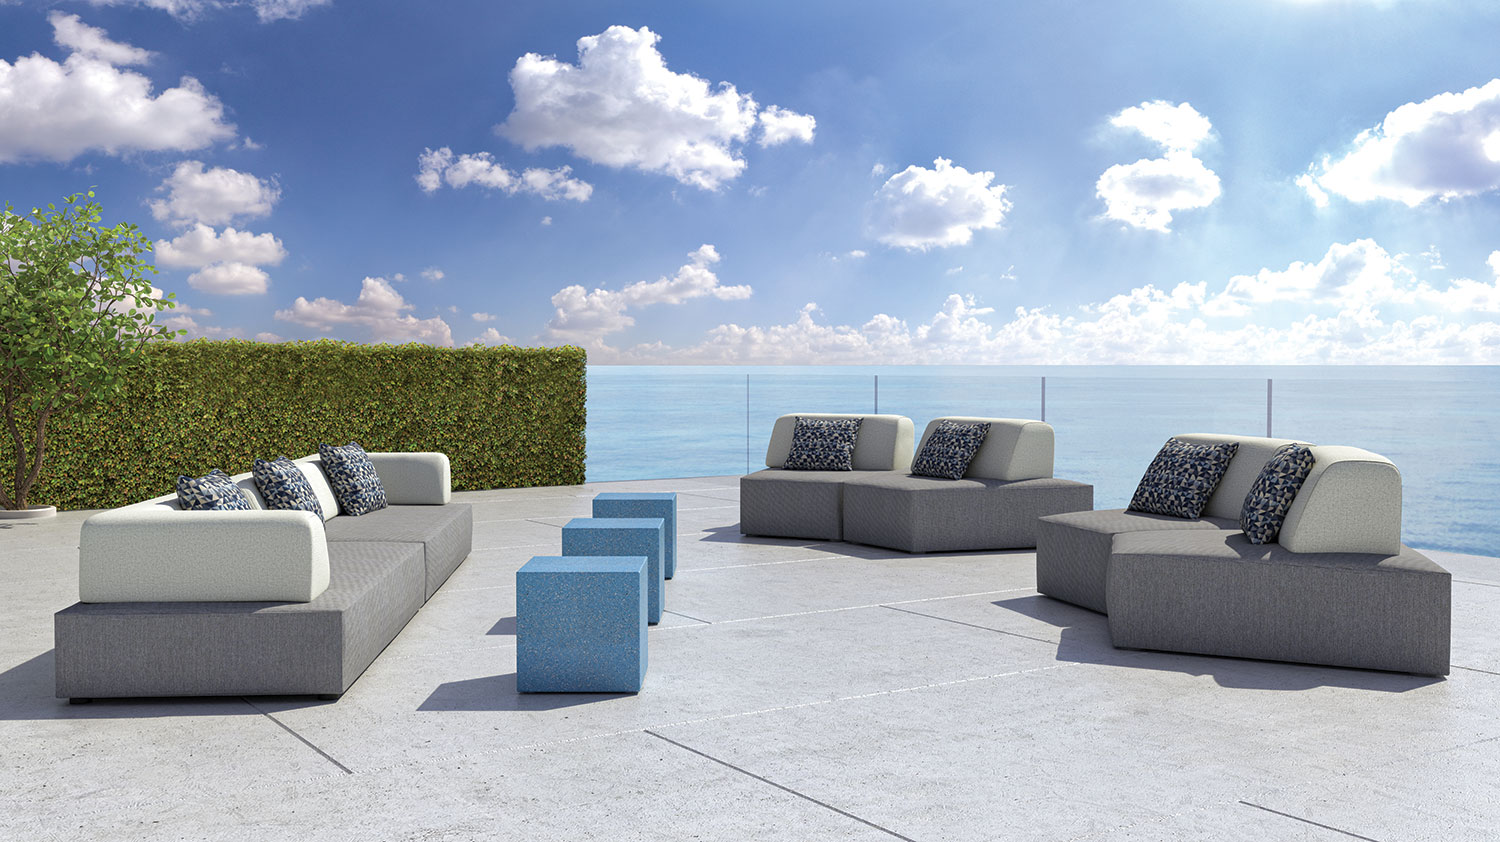 outdoor couches blue tables by water